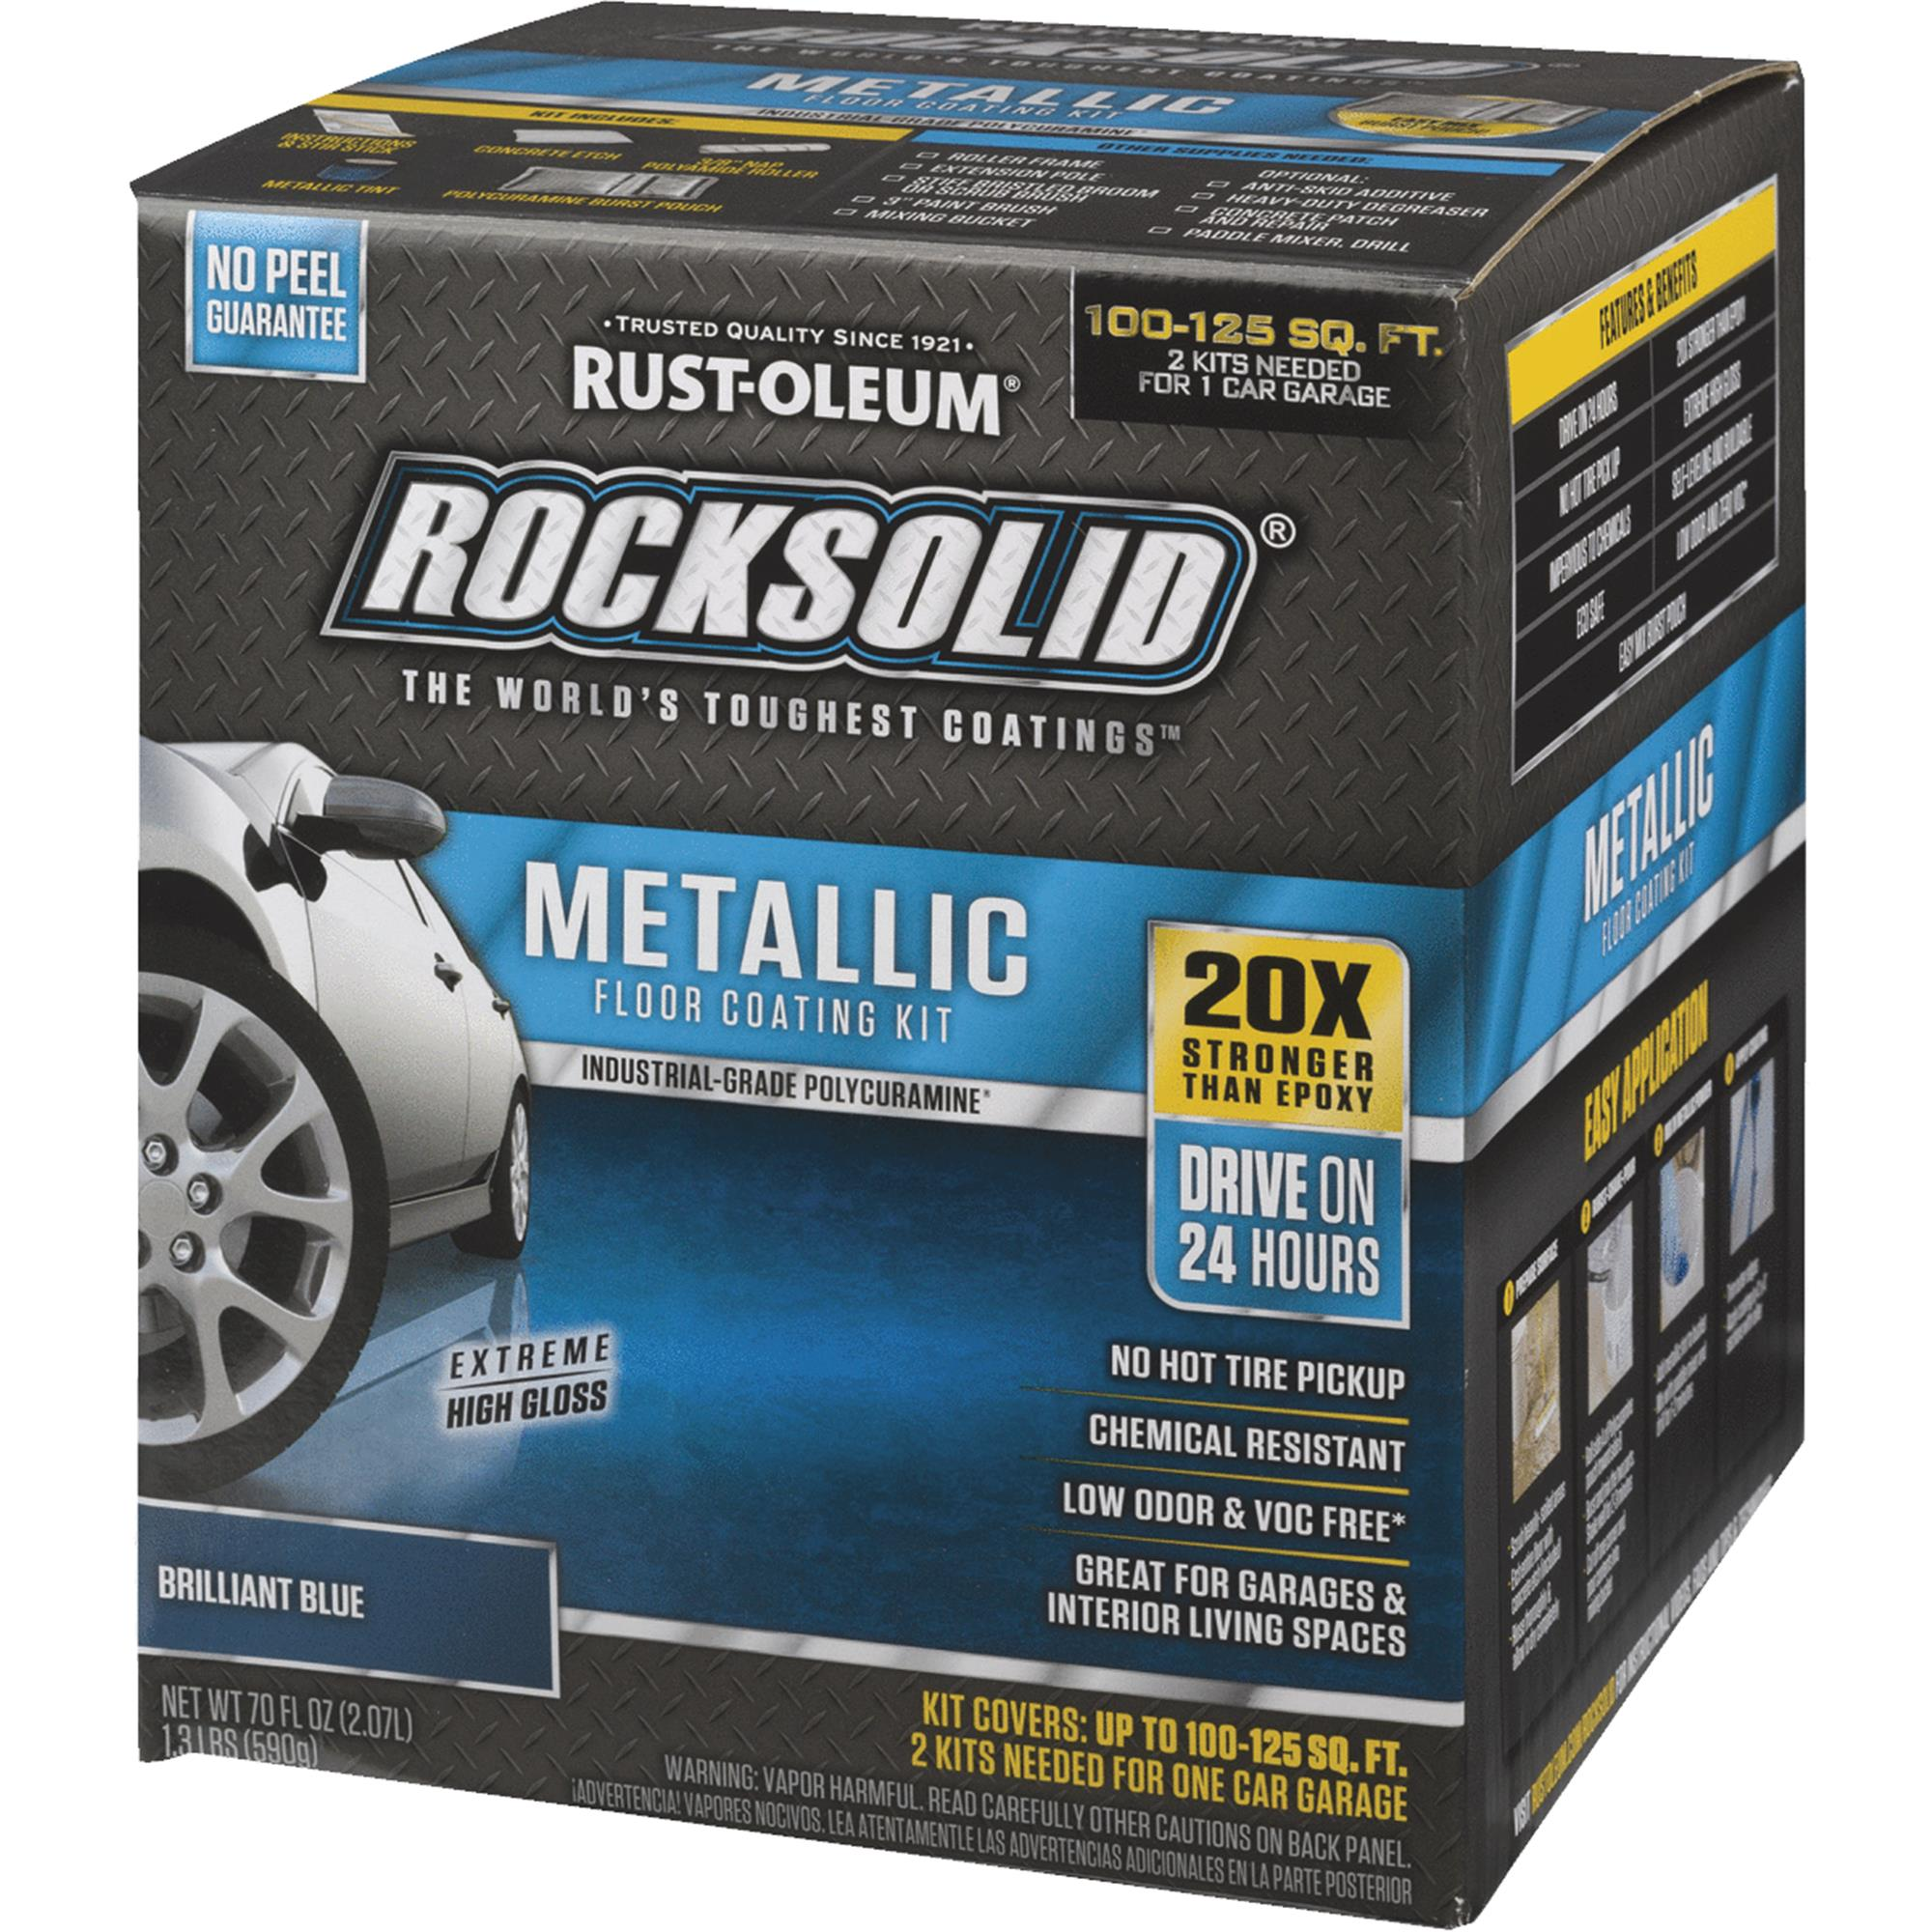 Rust-Oleum RockSolid Metallic Floor Coating Kit